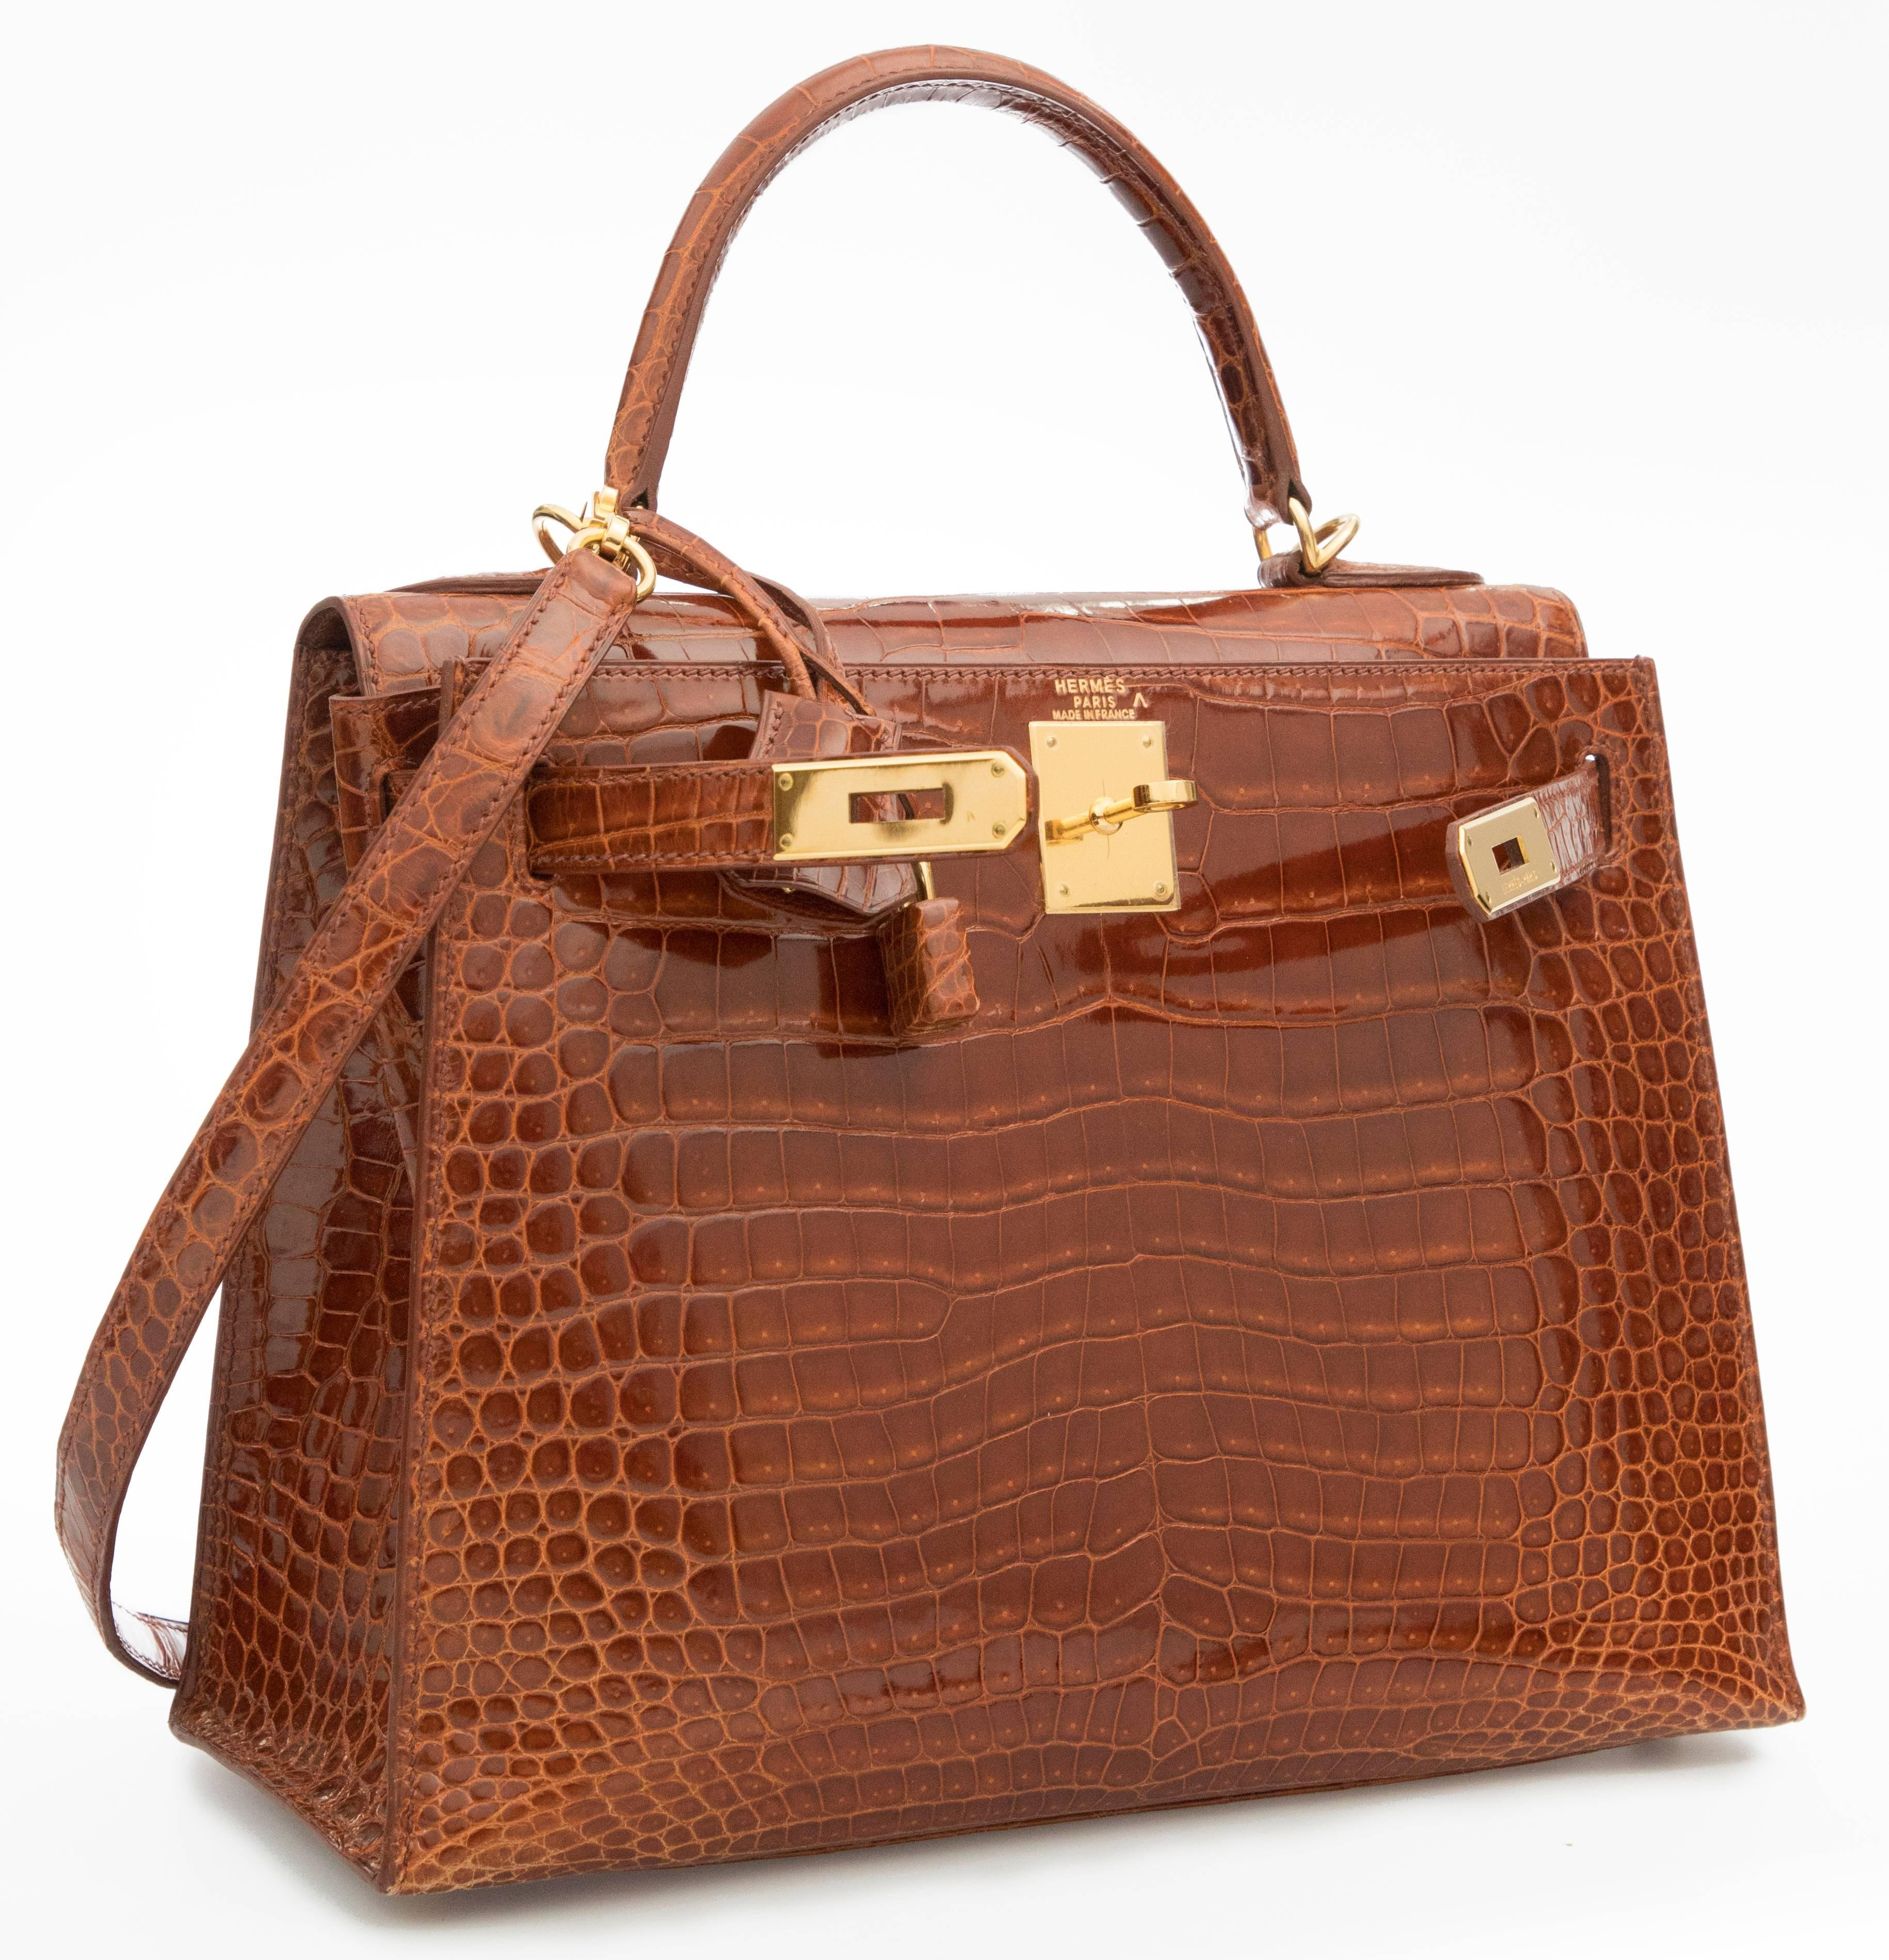 3565597a2539 ... new zealand hermes kelly 28 miel shiny porosus crocodile with gold  hardware. the overall condition